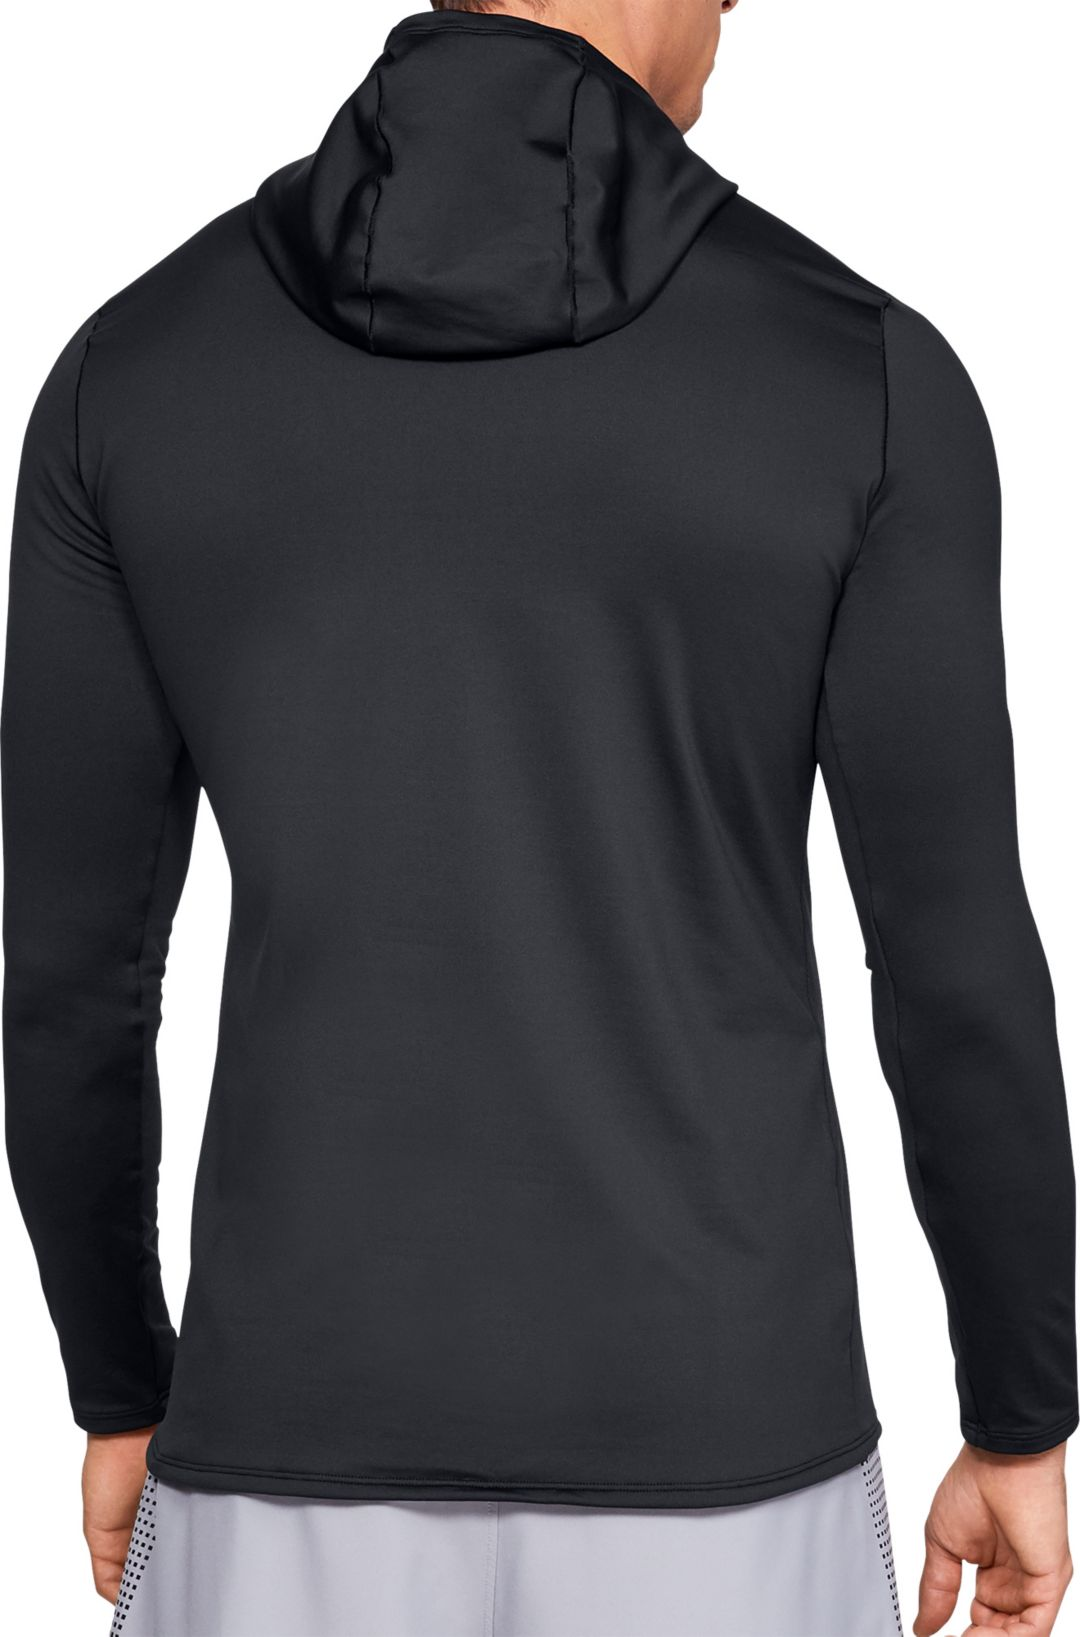 dd72615ca4 Under Armour Men's ColdGear Fitted Hooded Long Sleeve Shirt